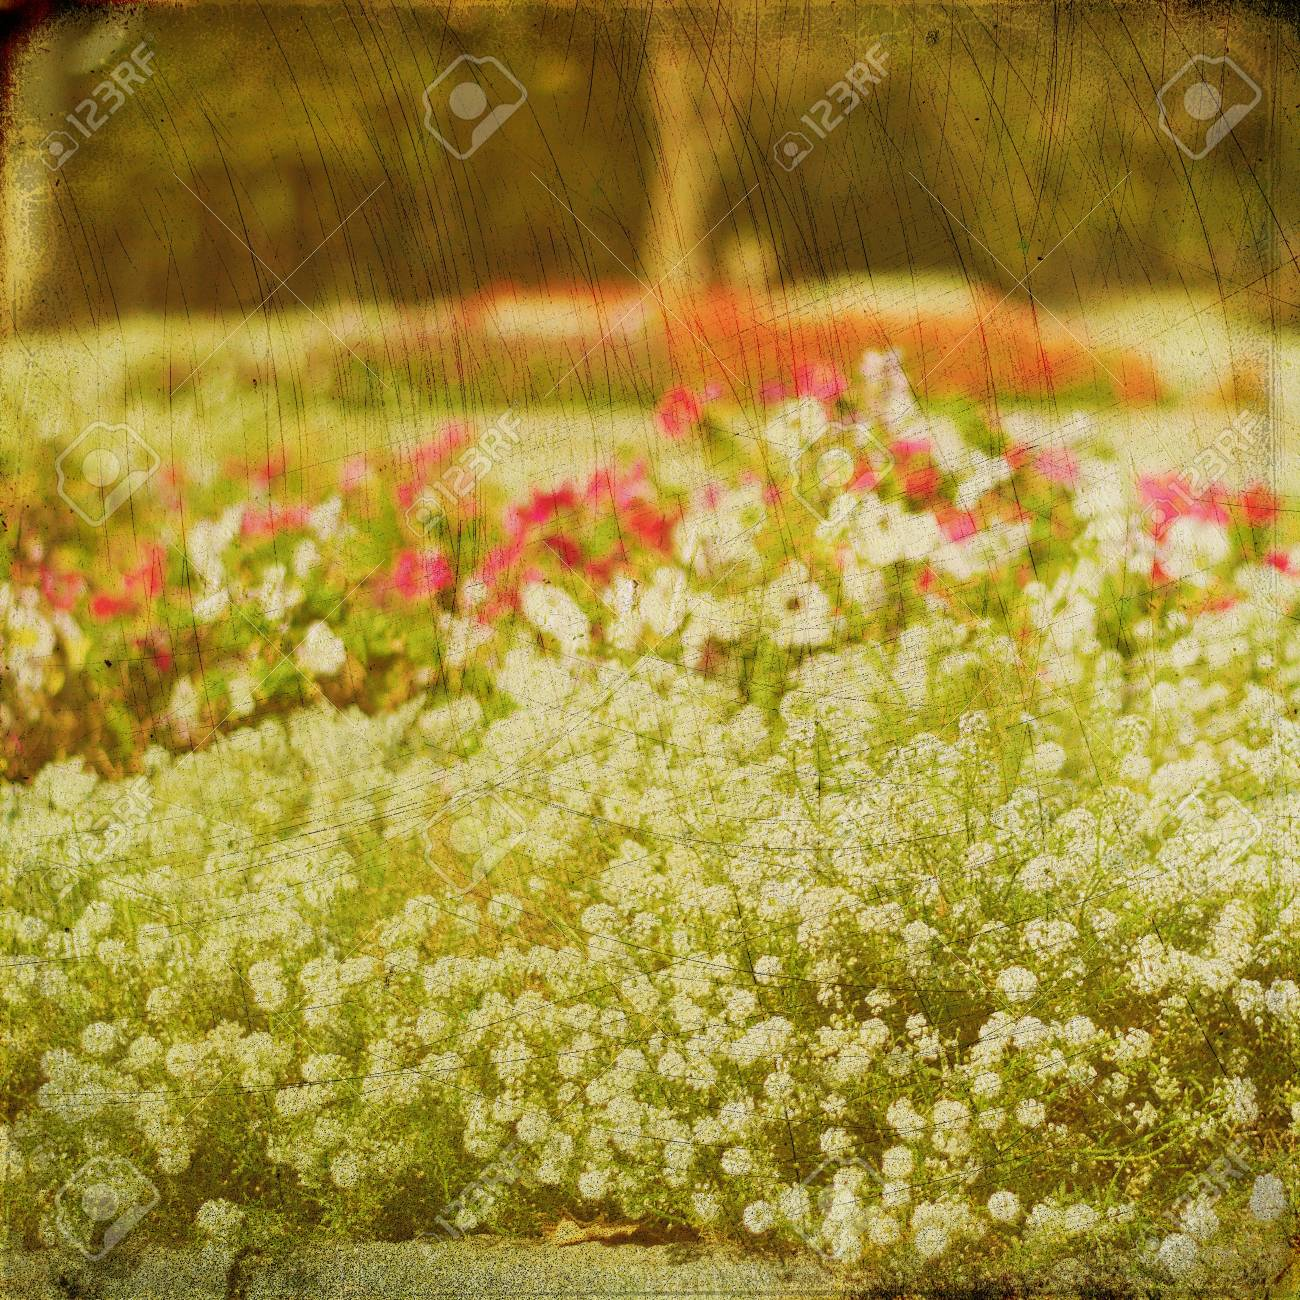 Grunge nature background, vintage paper texture Stock Photo - 15695039